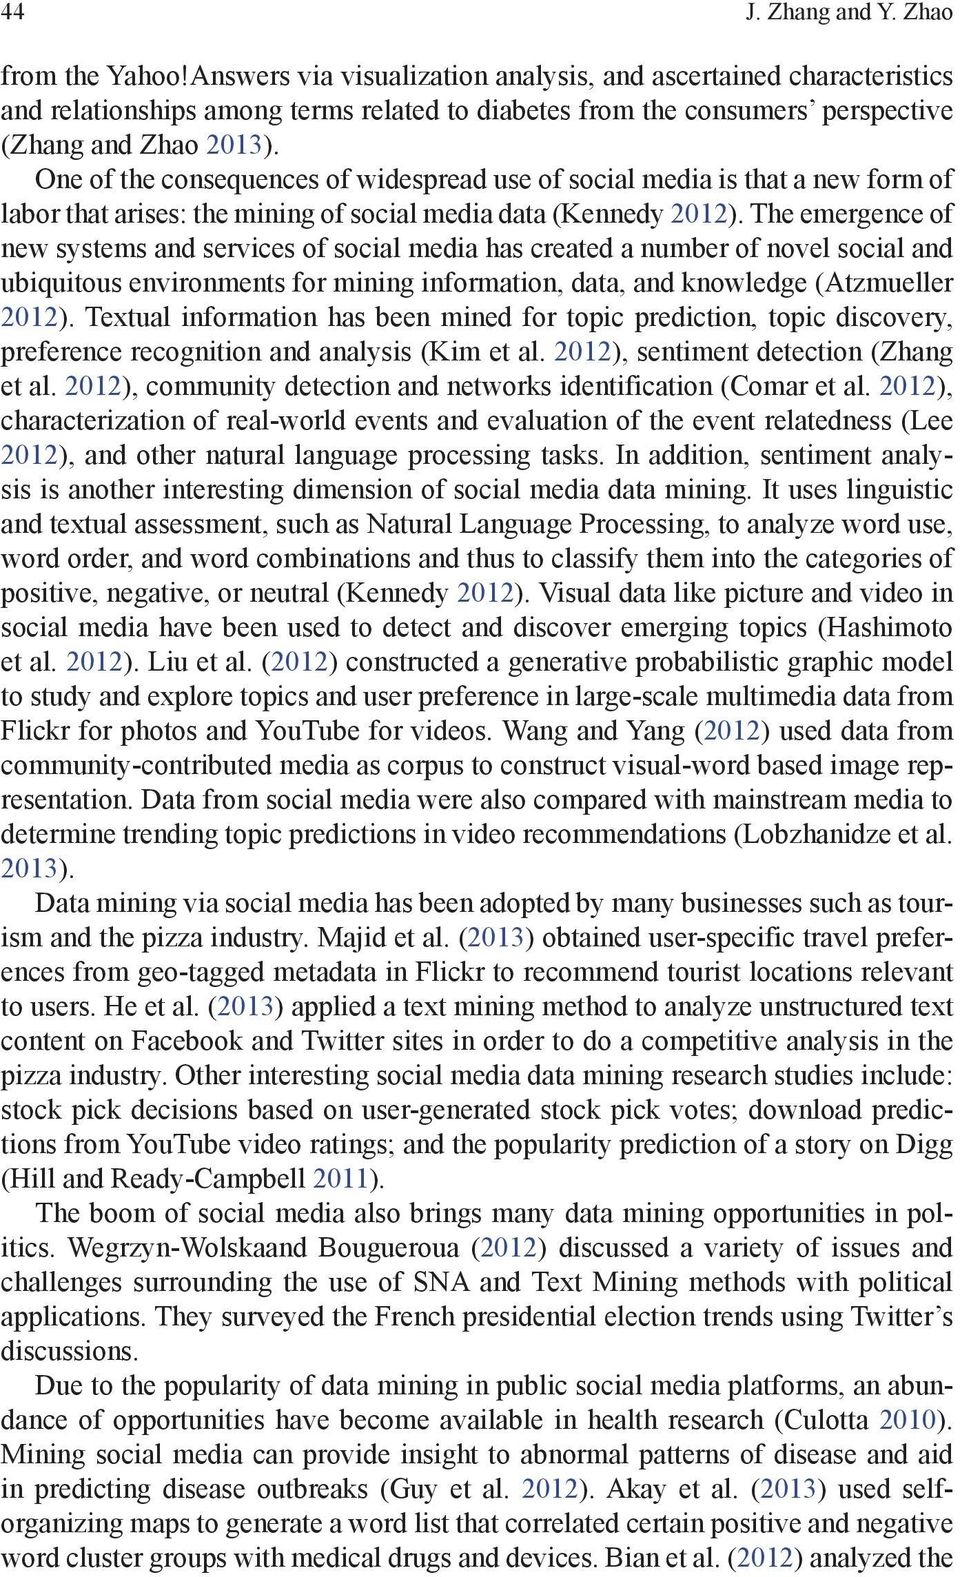 One of the consequences of widespread use of social media is that a new form of labor that arises: the mining of social media data (Kennedy 2012).